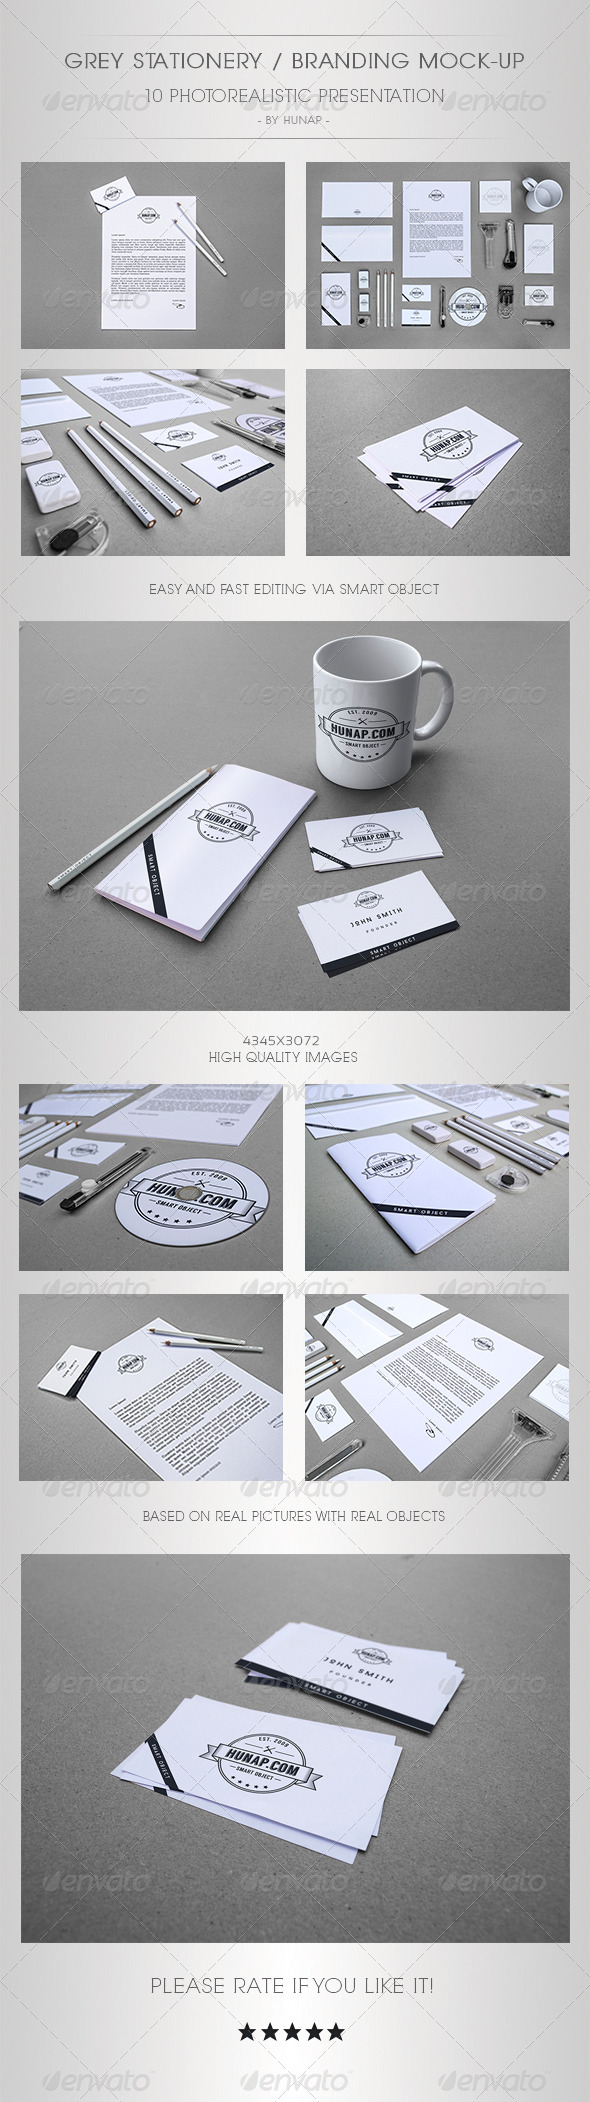 GraphicRiver Grey Stationery Branding Mock-Up 5410084